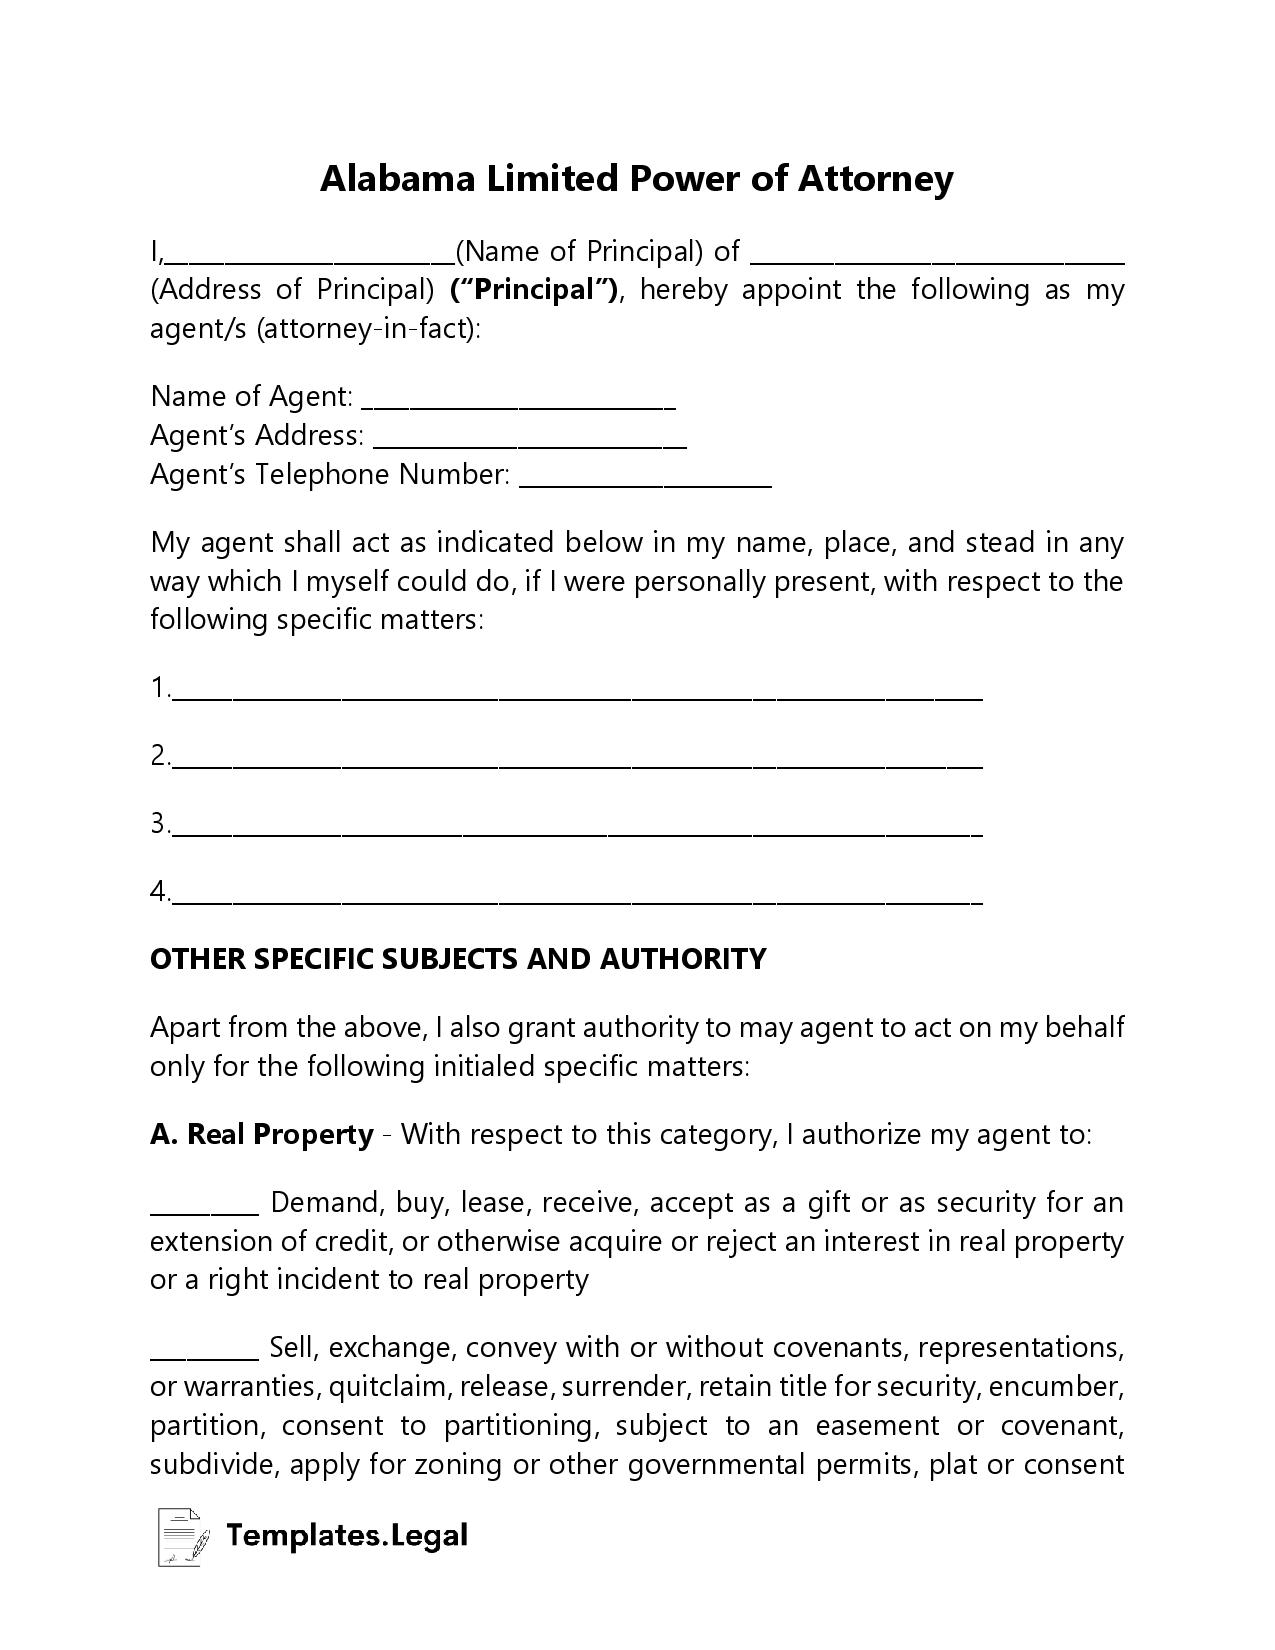 Alabama Limited Power of Attorney - Templates.Legal